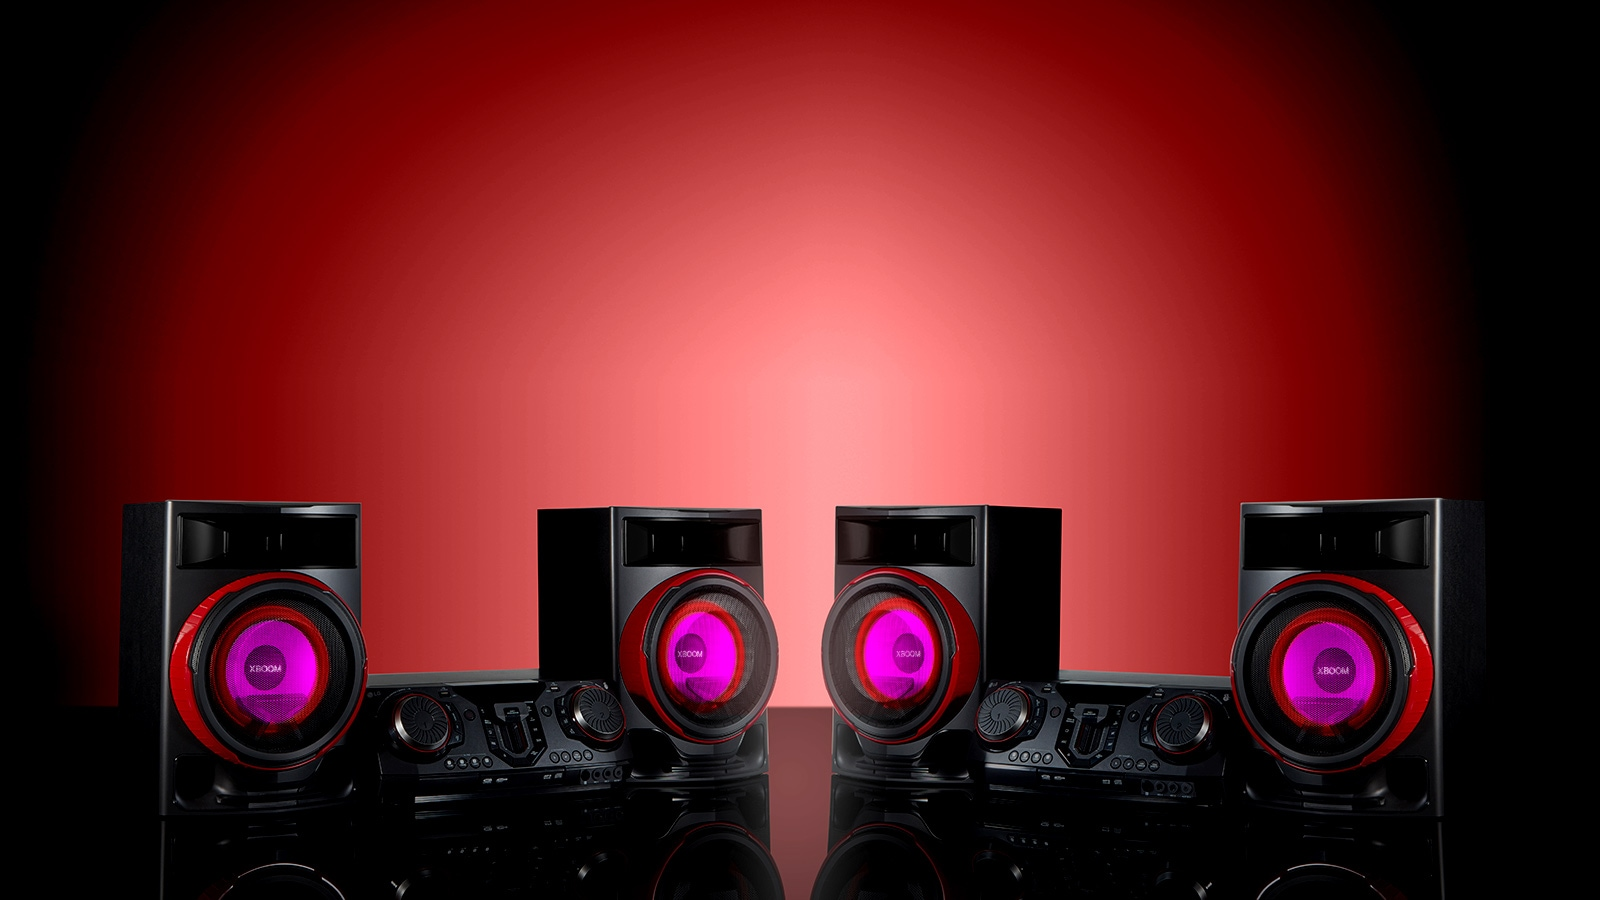 Double Your Sound with Wireless Party Link1